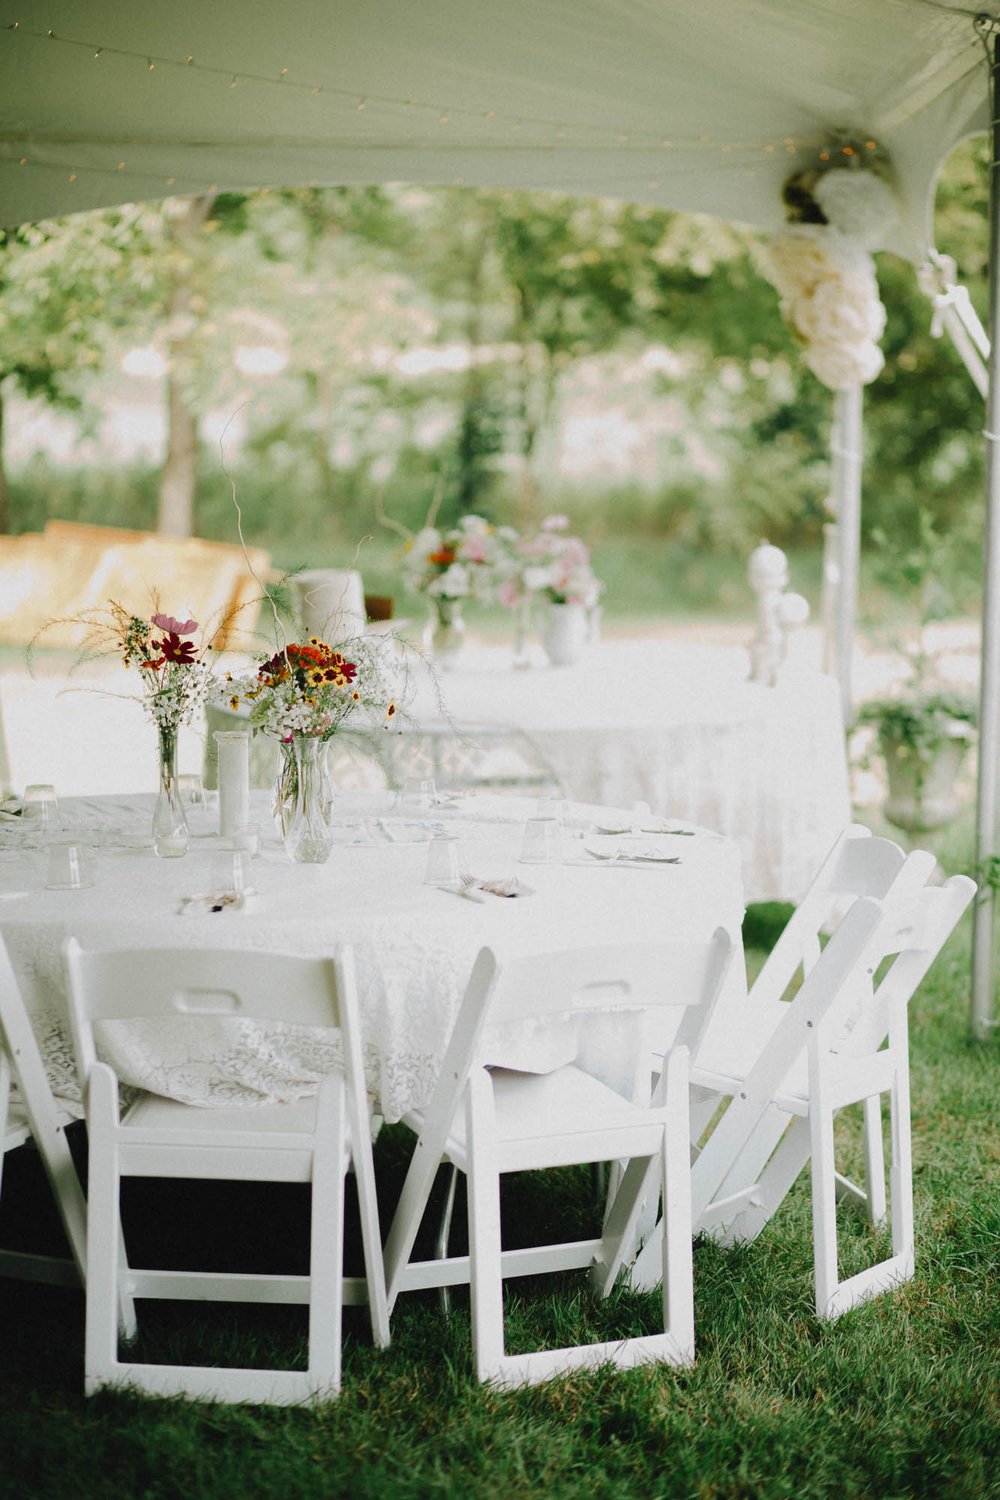 Leah-Graham-Outdoor-DIY-Michigan-Wedding-Details-008@2x.jpg